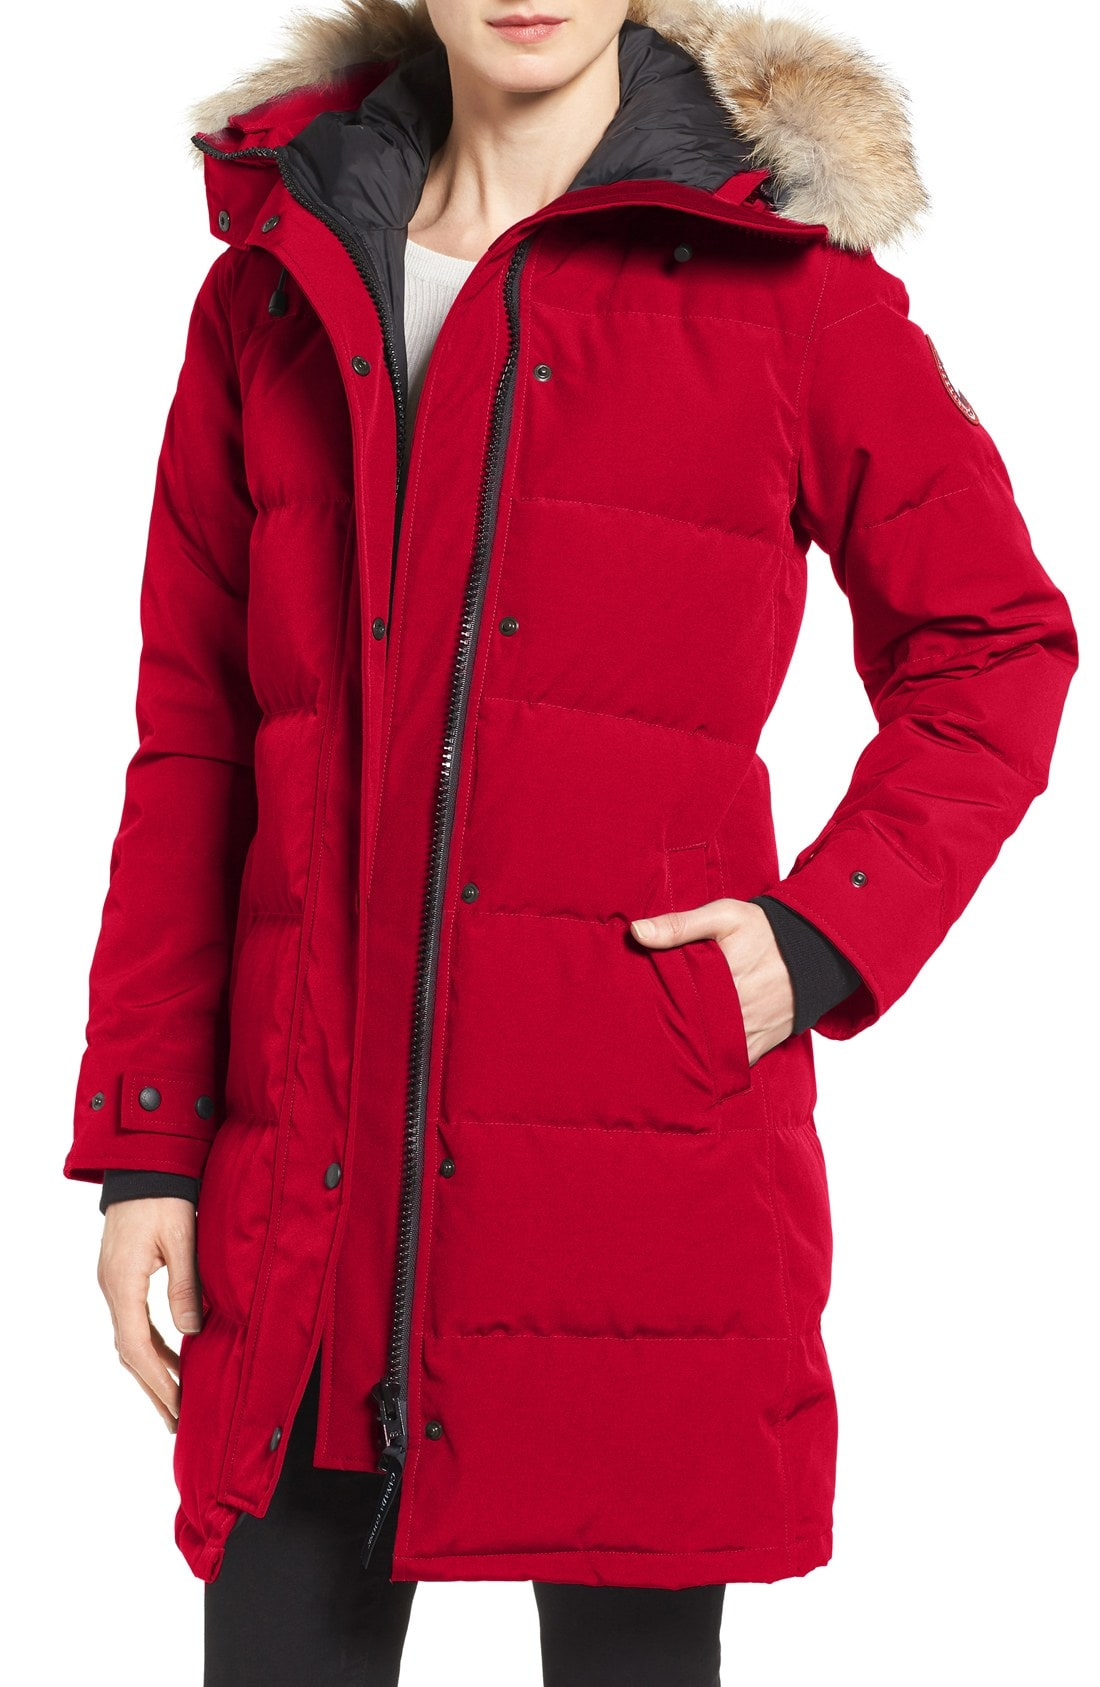 RED PARKAS – A good choice for fashionistas